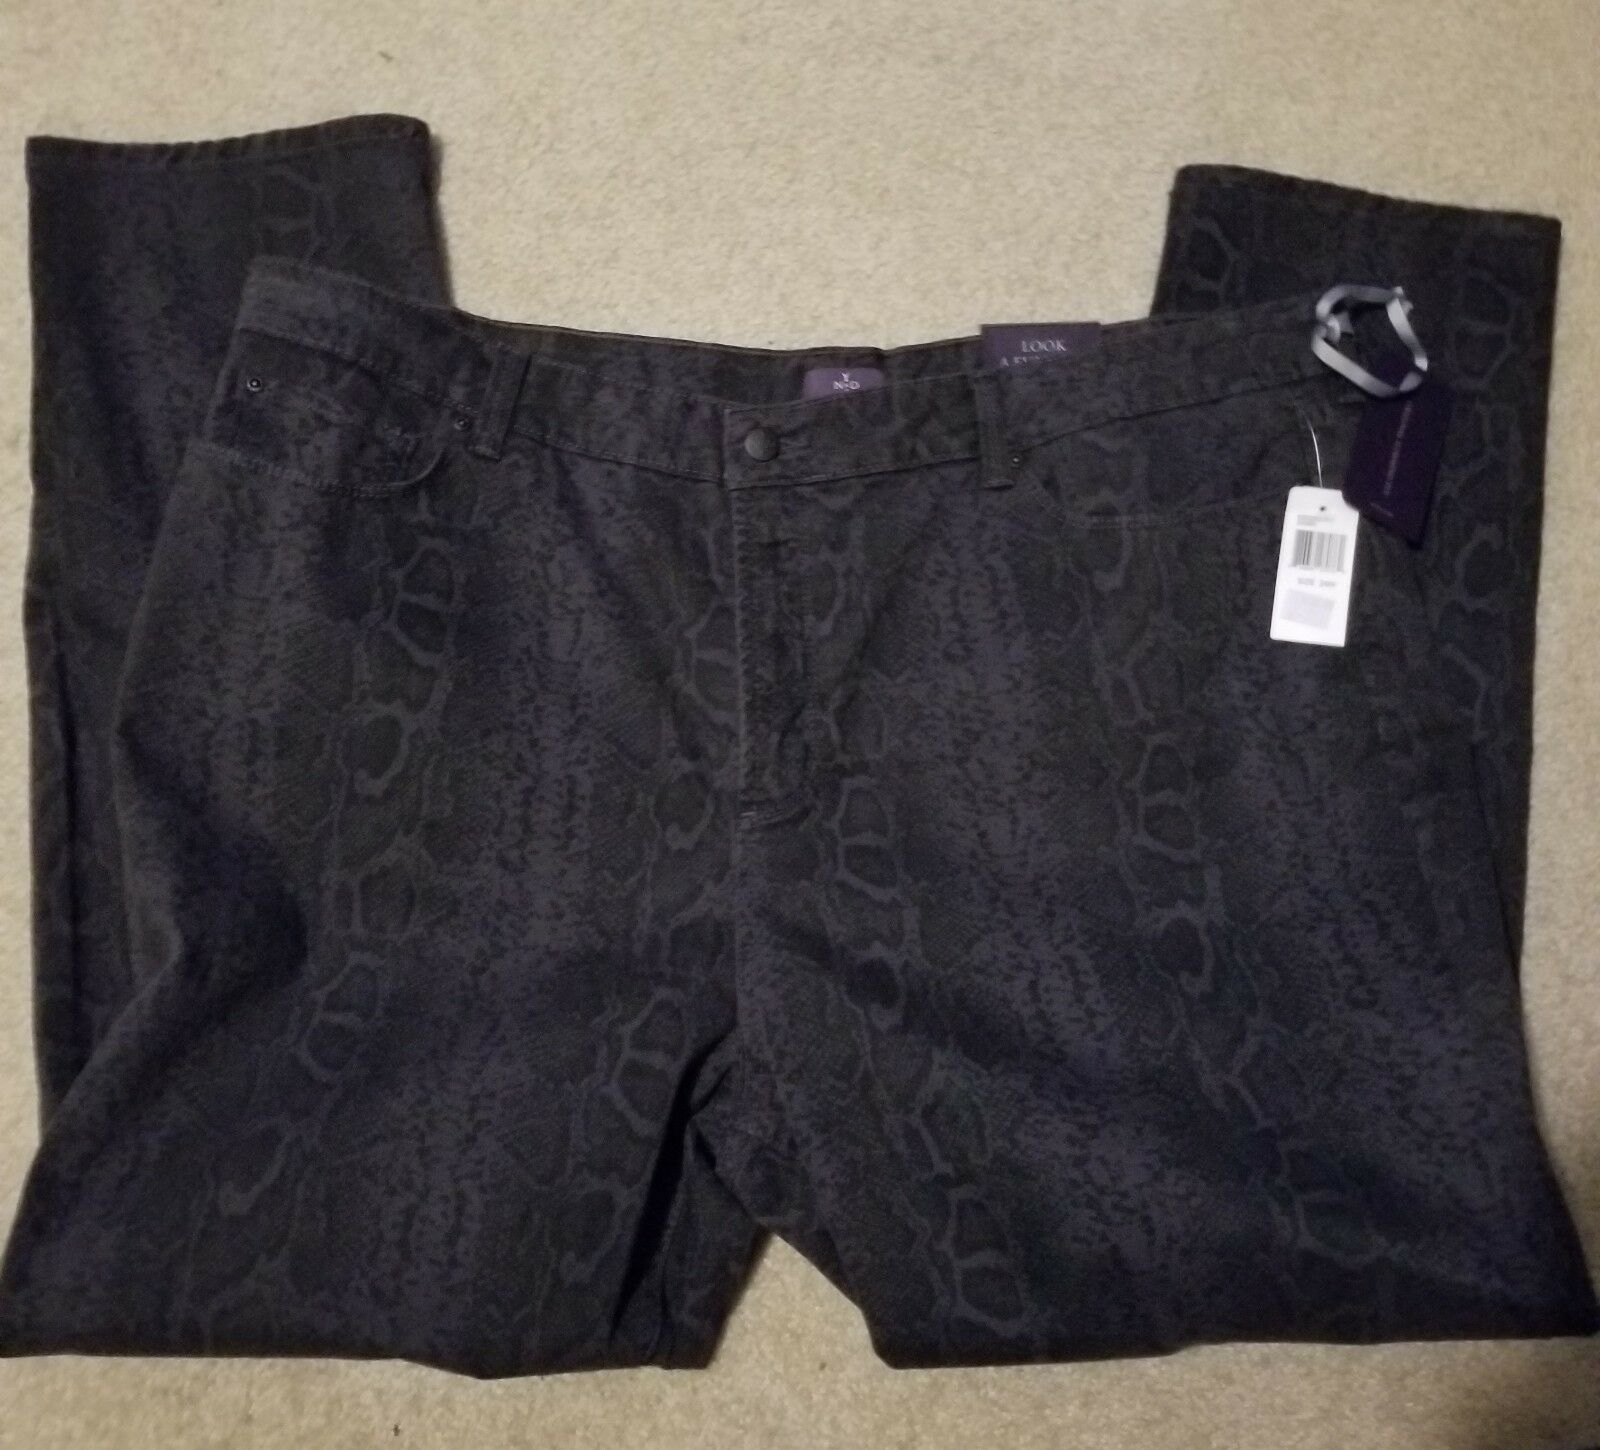 NYDJ Not Your Daughters Jeans Dark Ash Skinny Size 24W